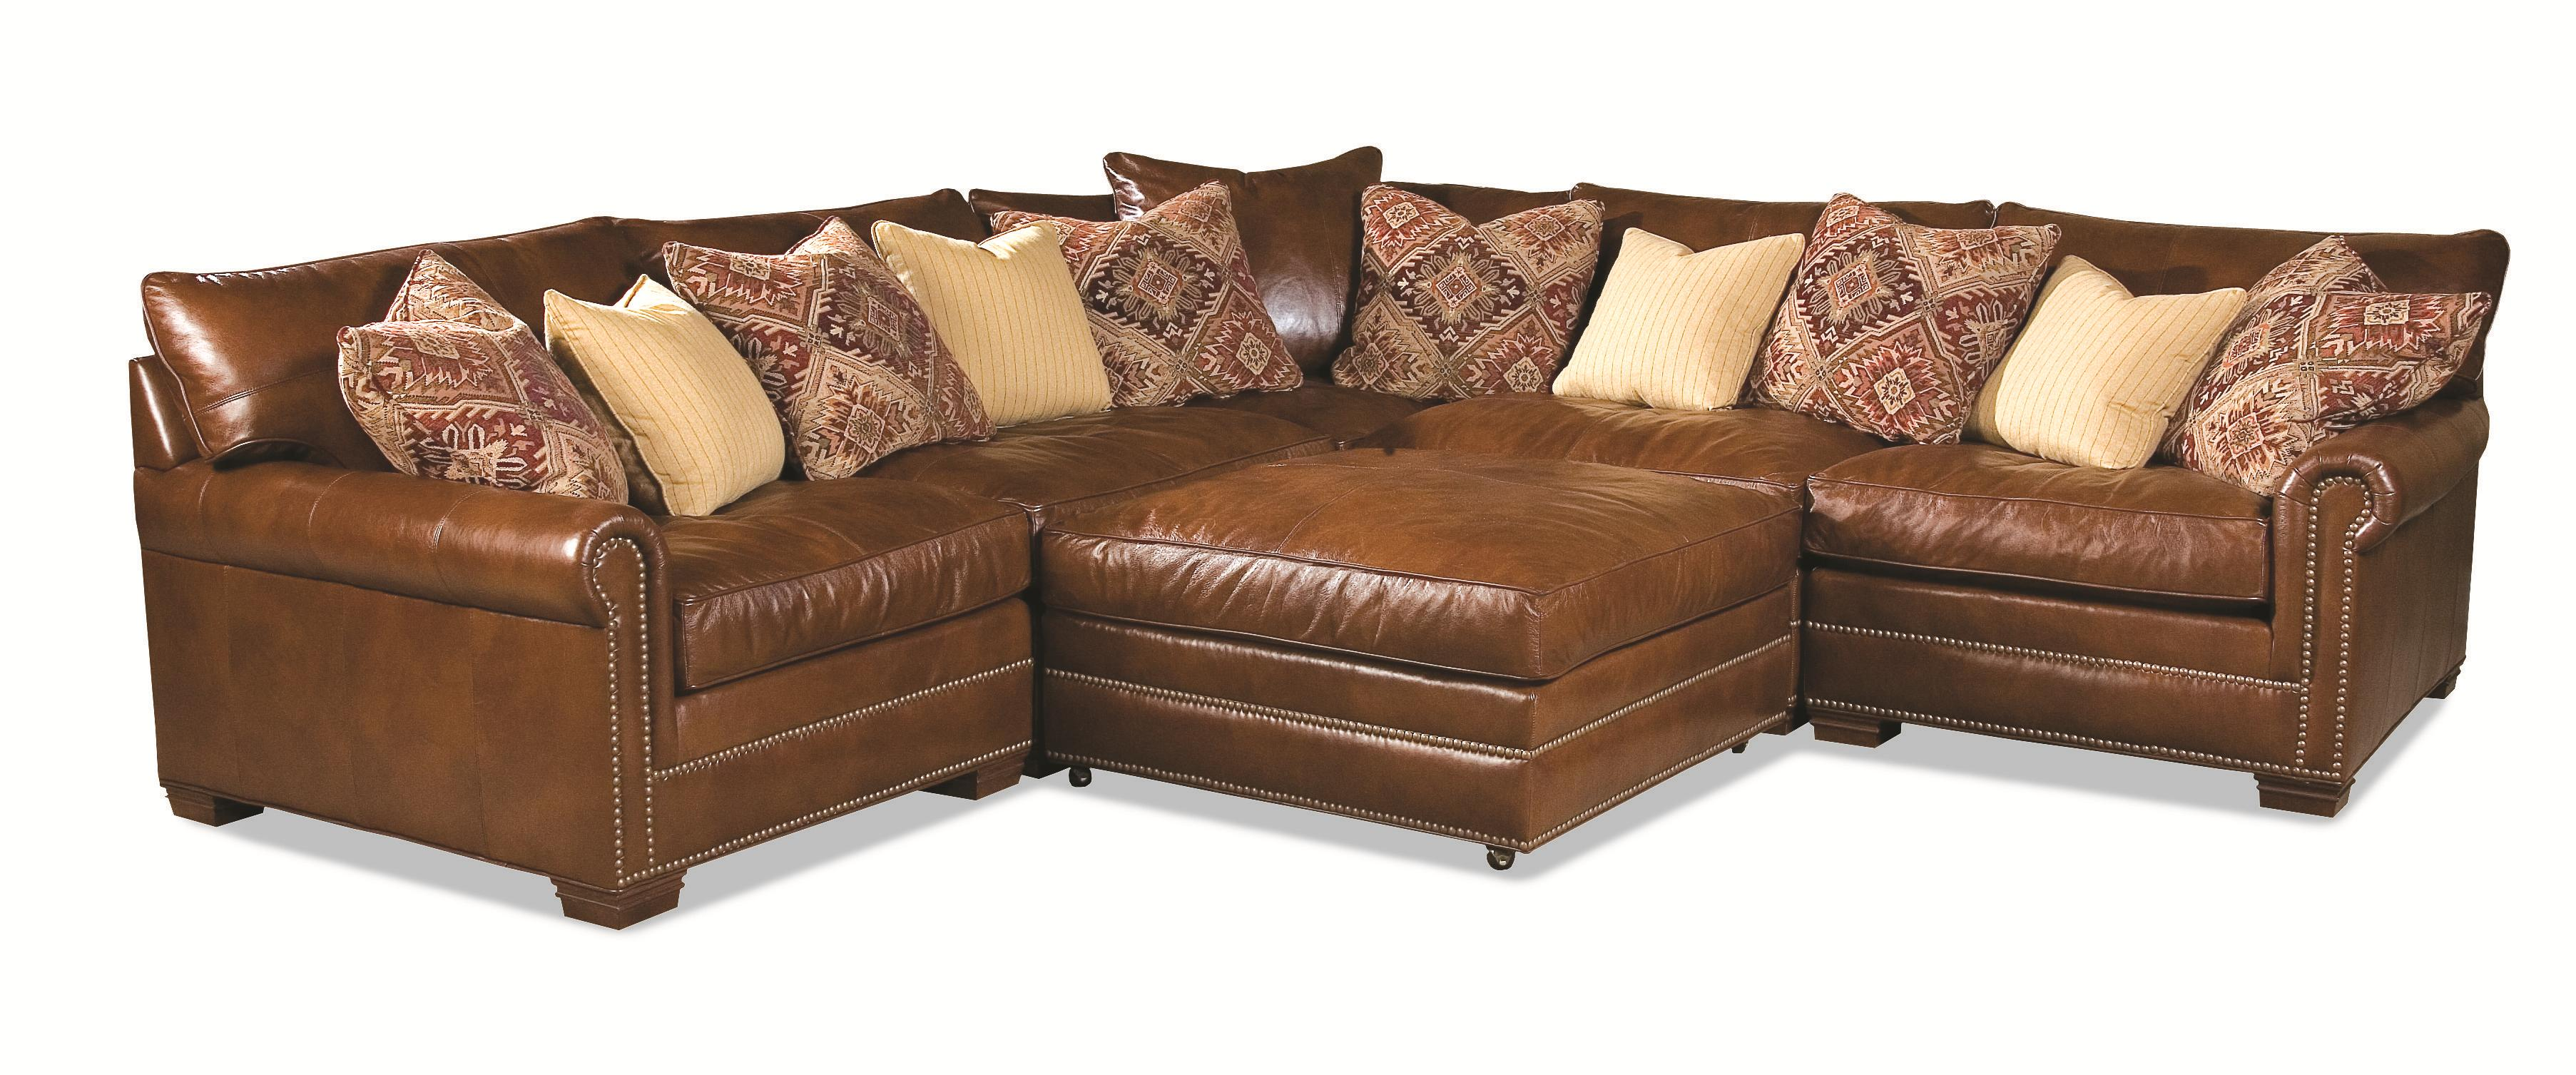 7100 Sectional by Huntington House at Baer's Furniture